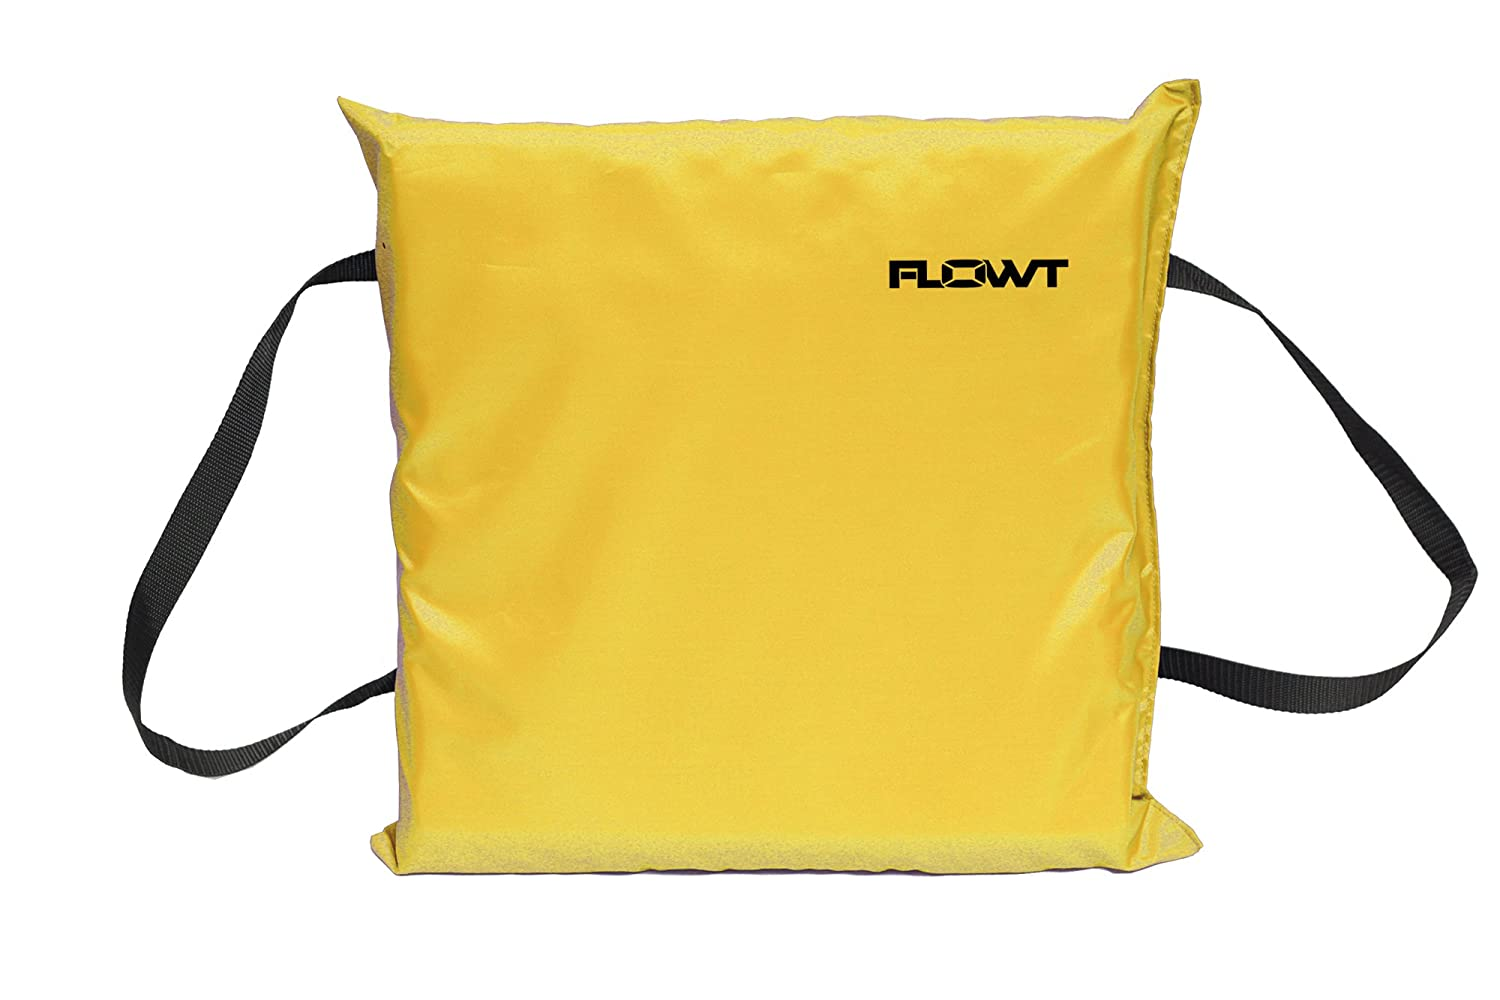 Flotation Gear